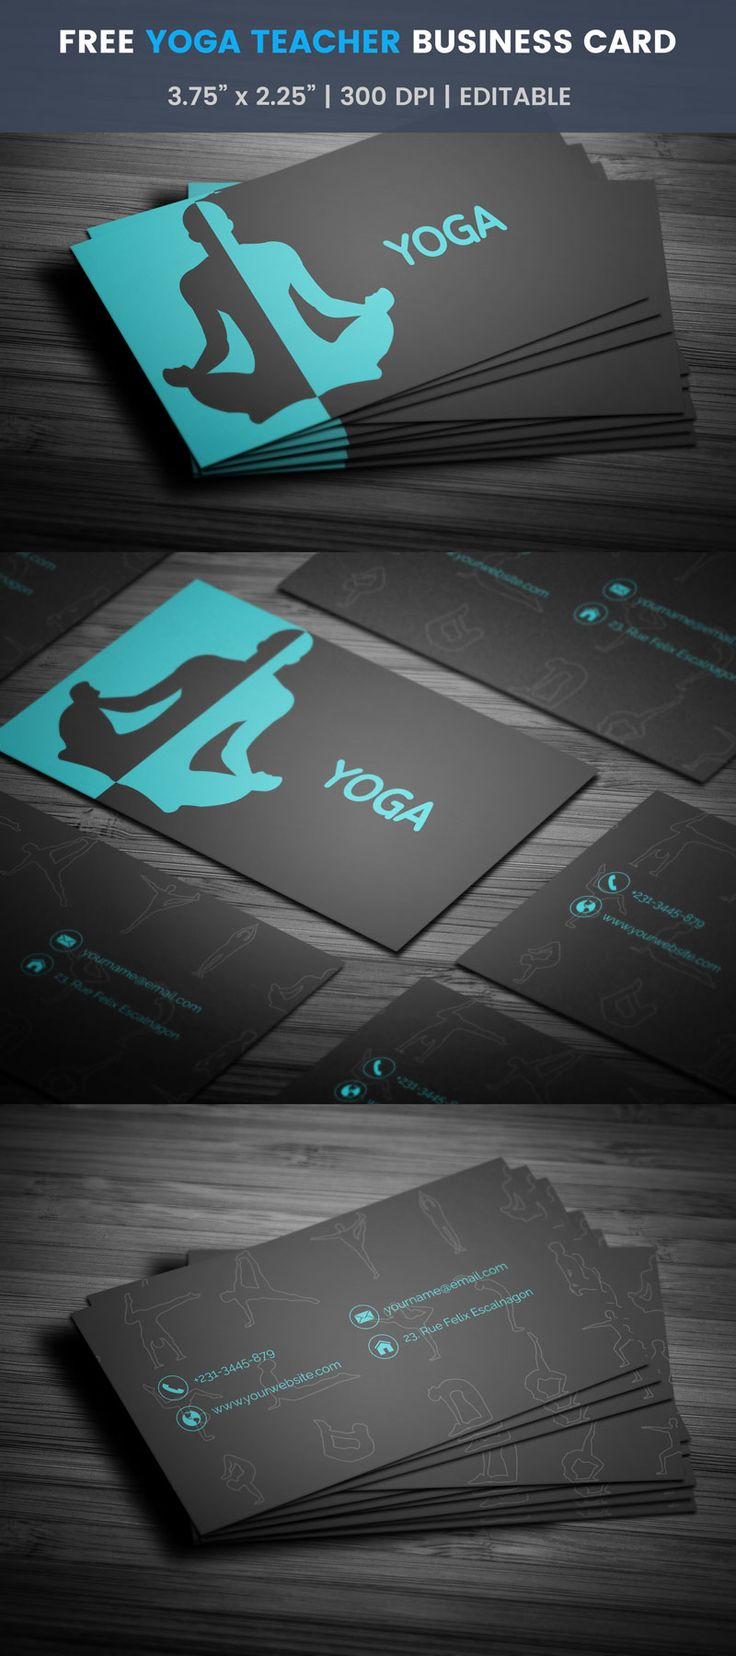 Best 200 free business card templates images on pinterest free yoga instructor business card colourmoves